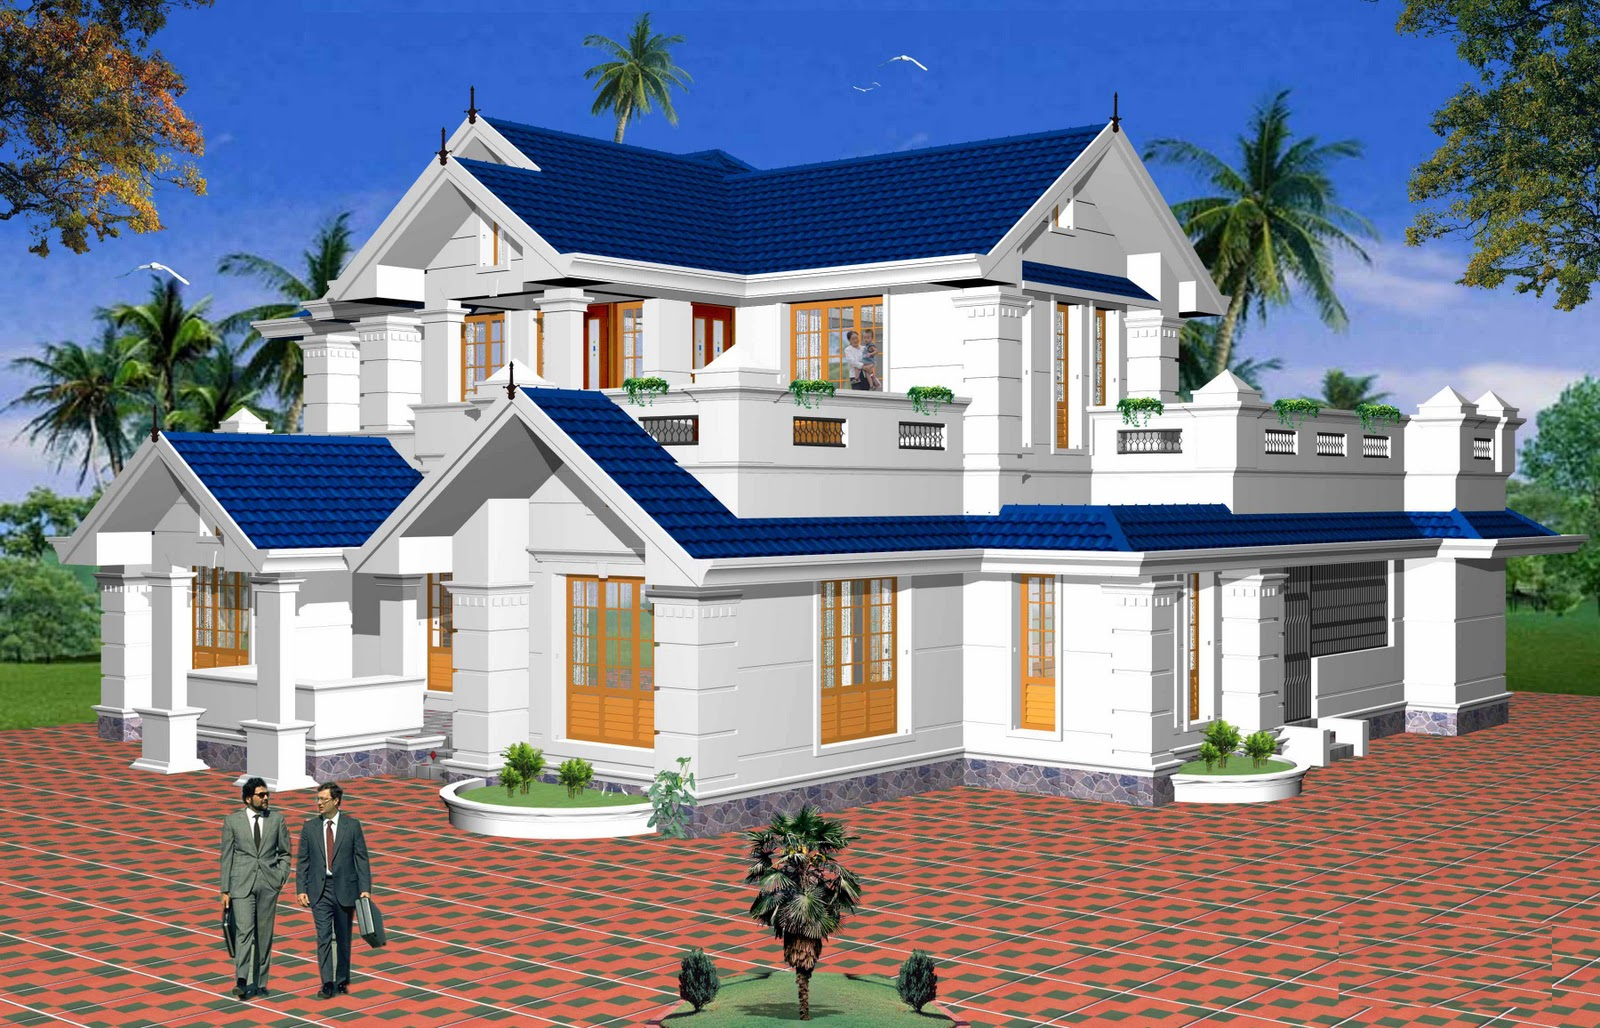 Top arts area most popular house design for Best house designs 2012